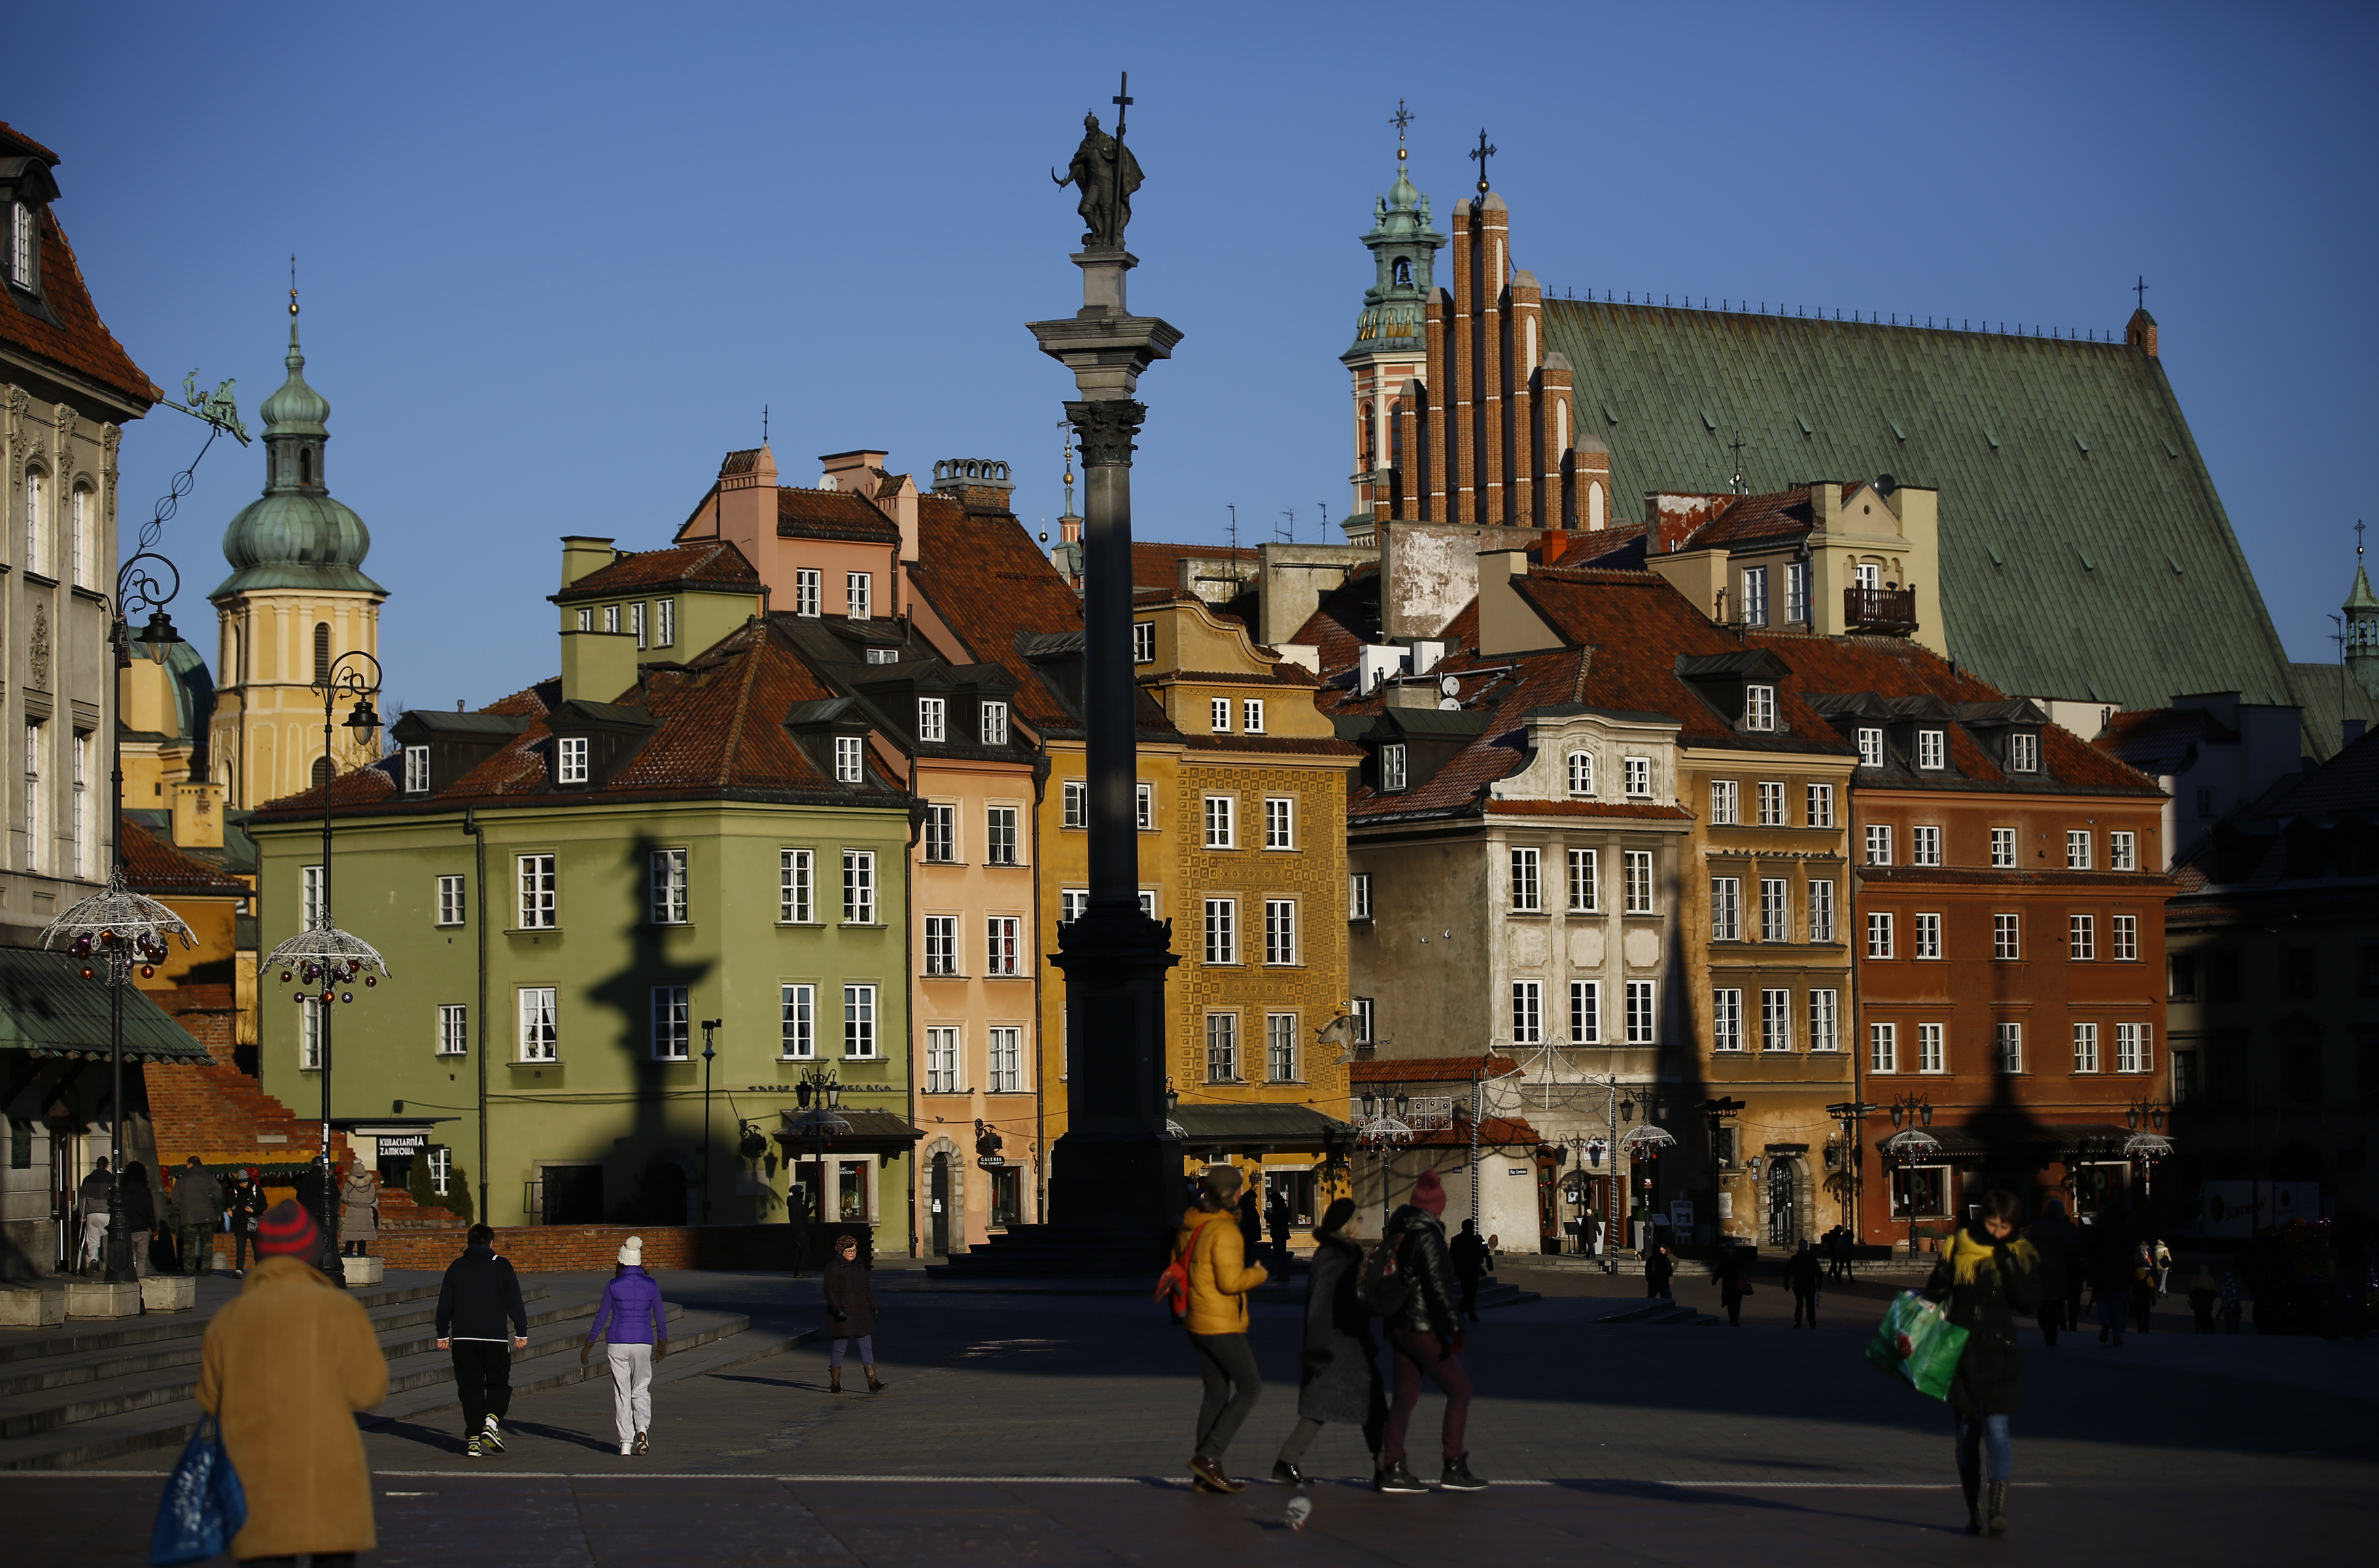 Warsaw looks to win more finance business in wake of Brexit